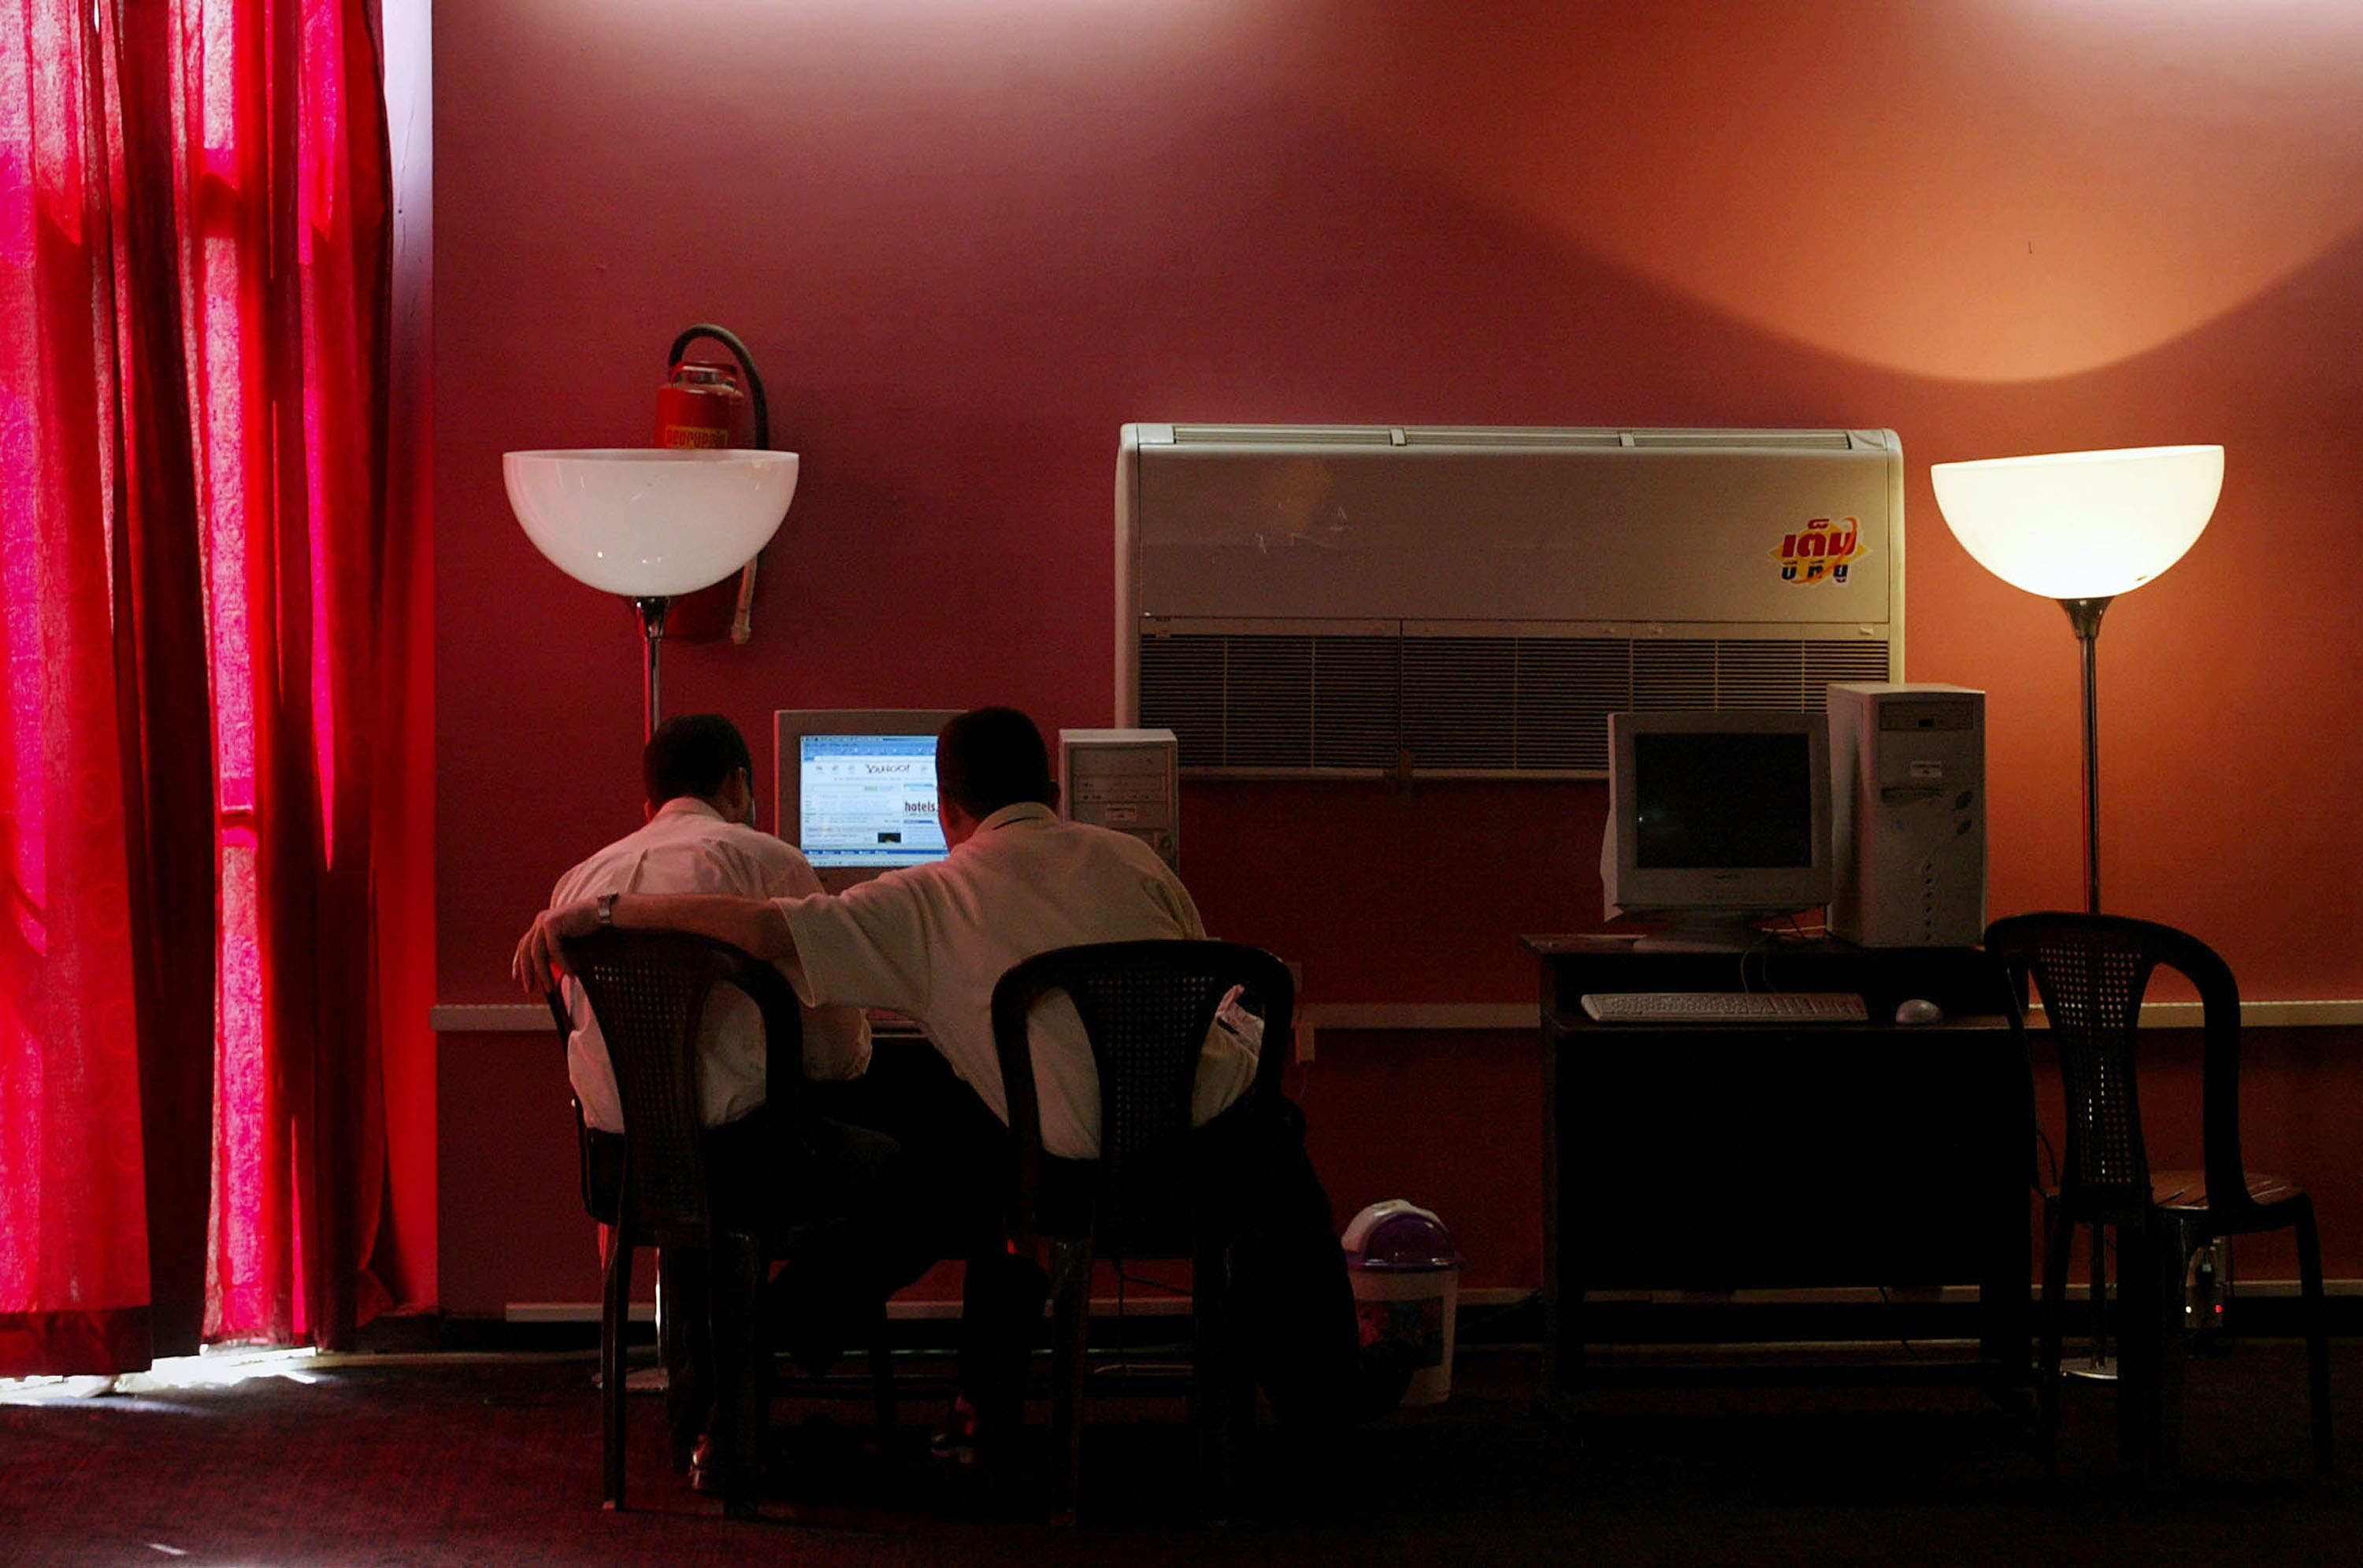 In Kuwaiti cafes, placing an order for some porn with your carrot cake won't fly with the law.